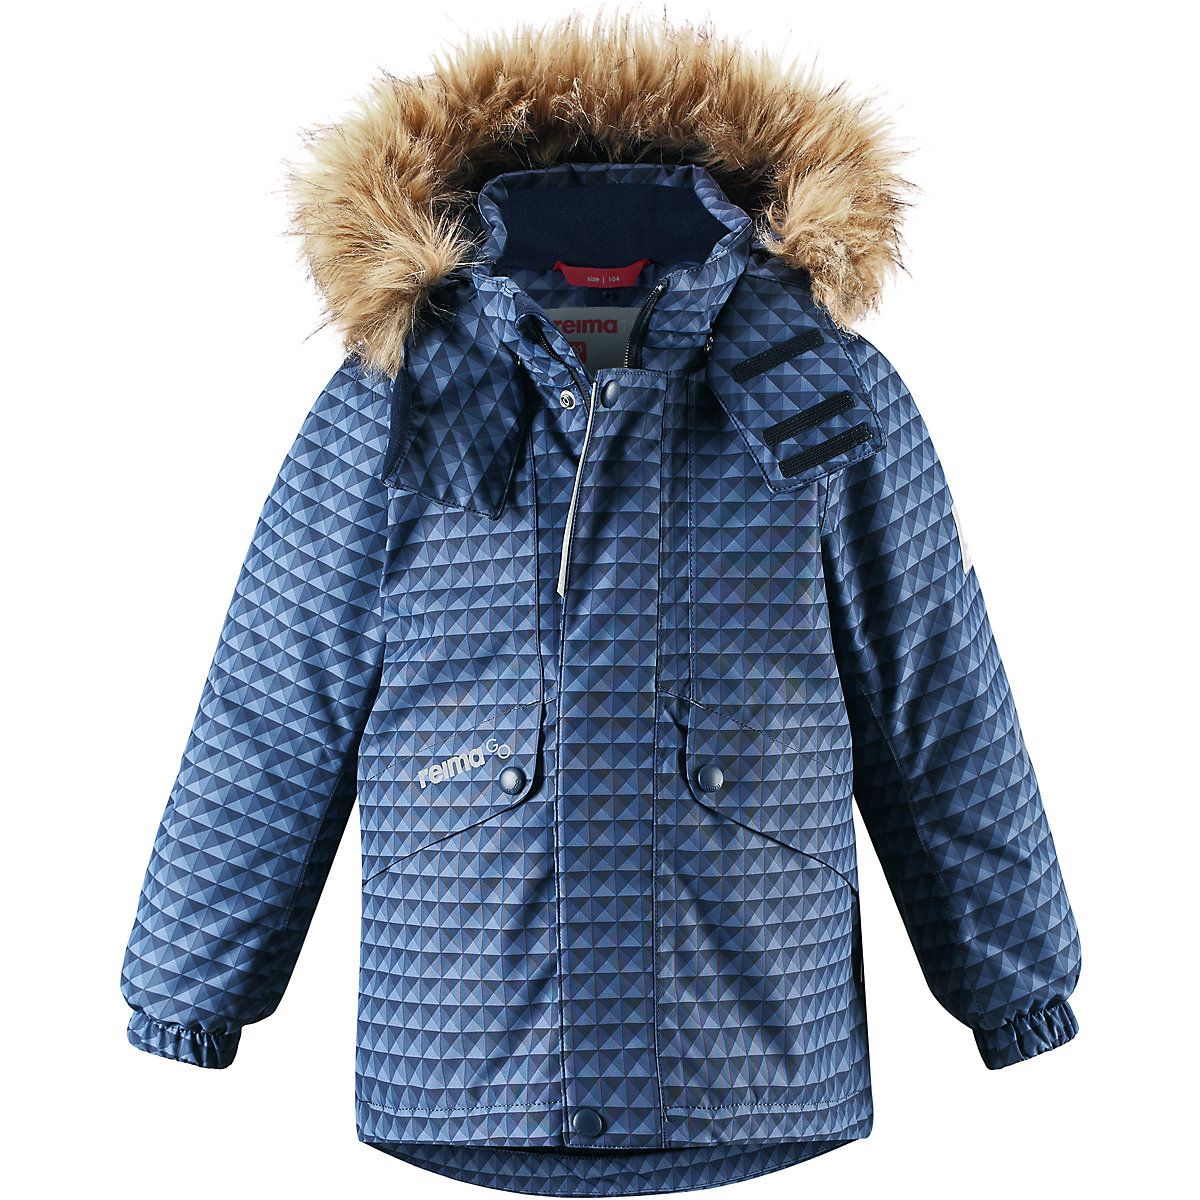 REIMA Jackets & Coats 8688762 for boys baby clothing winter warm boy girl jacket Polyester newborn baby boy girl romper 100